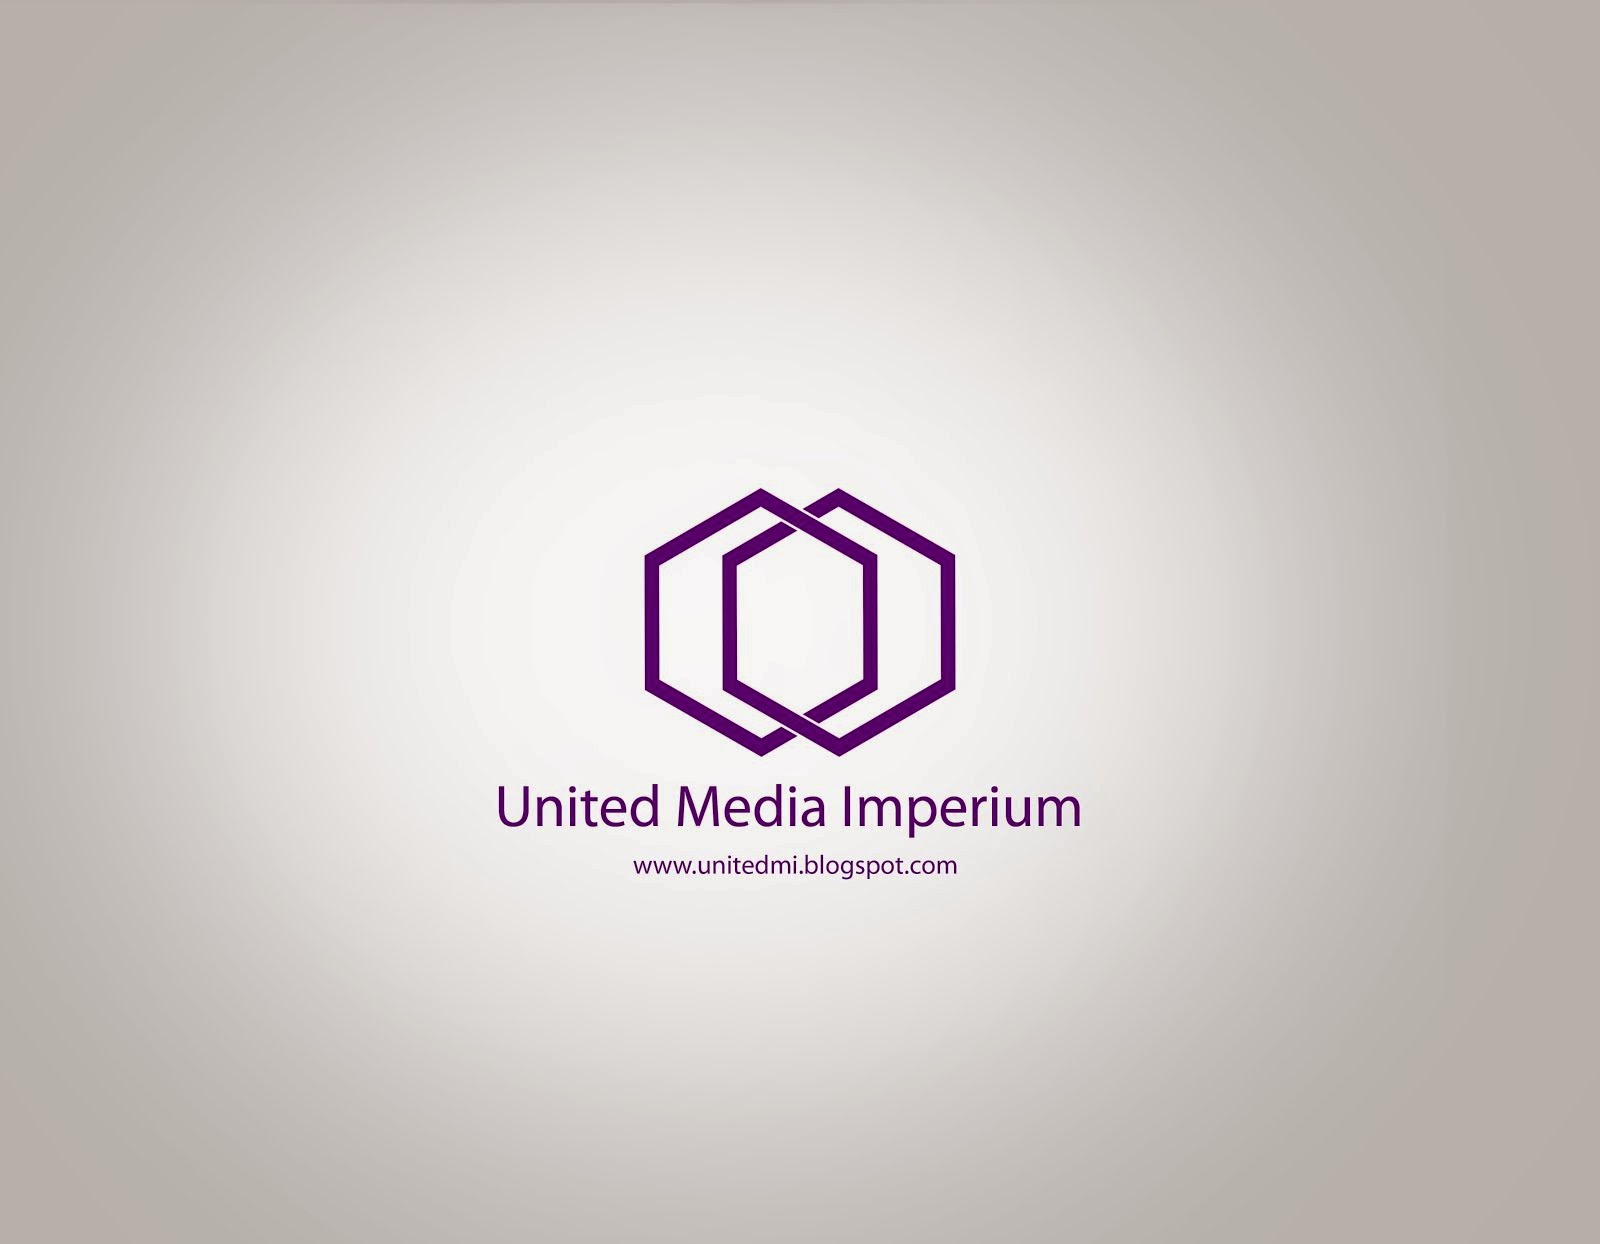 United Media Imperium